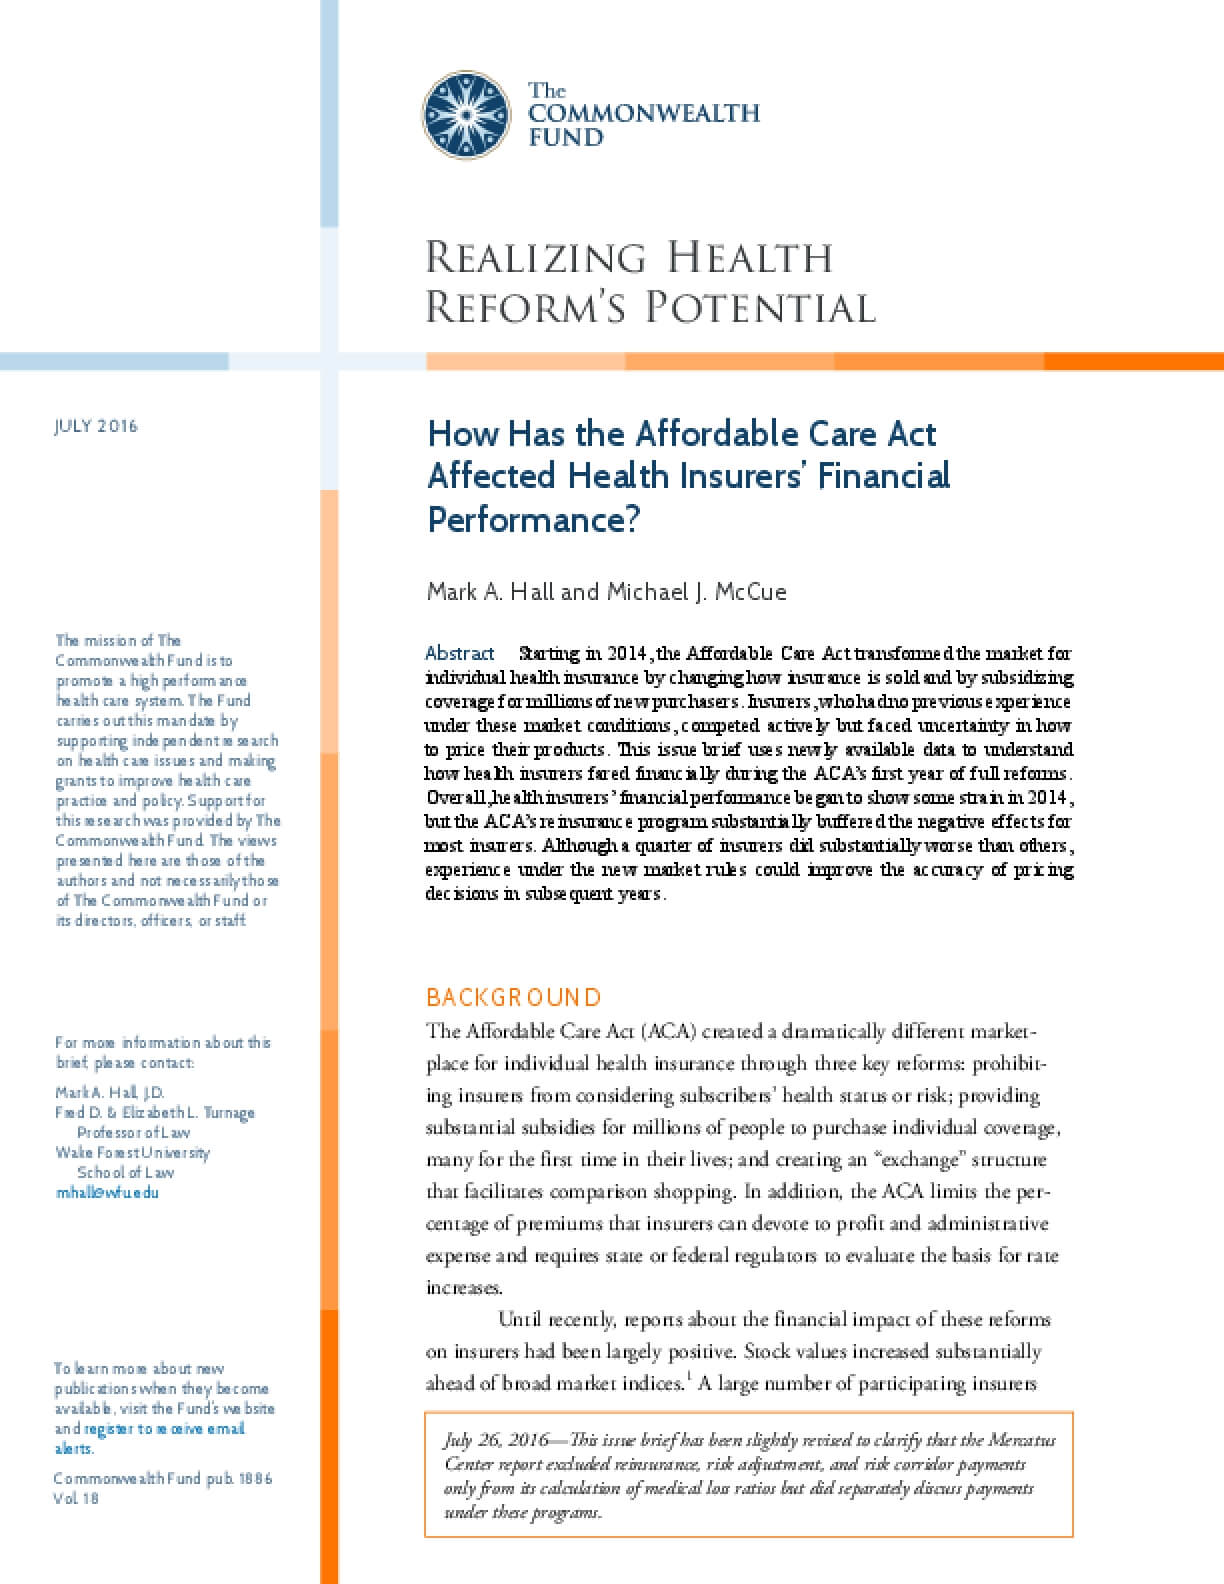 How Has the Affordable Care Act Affected Health Insurers' Financial Performance?